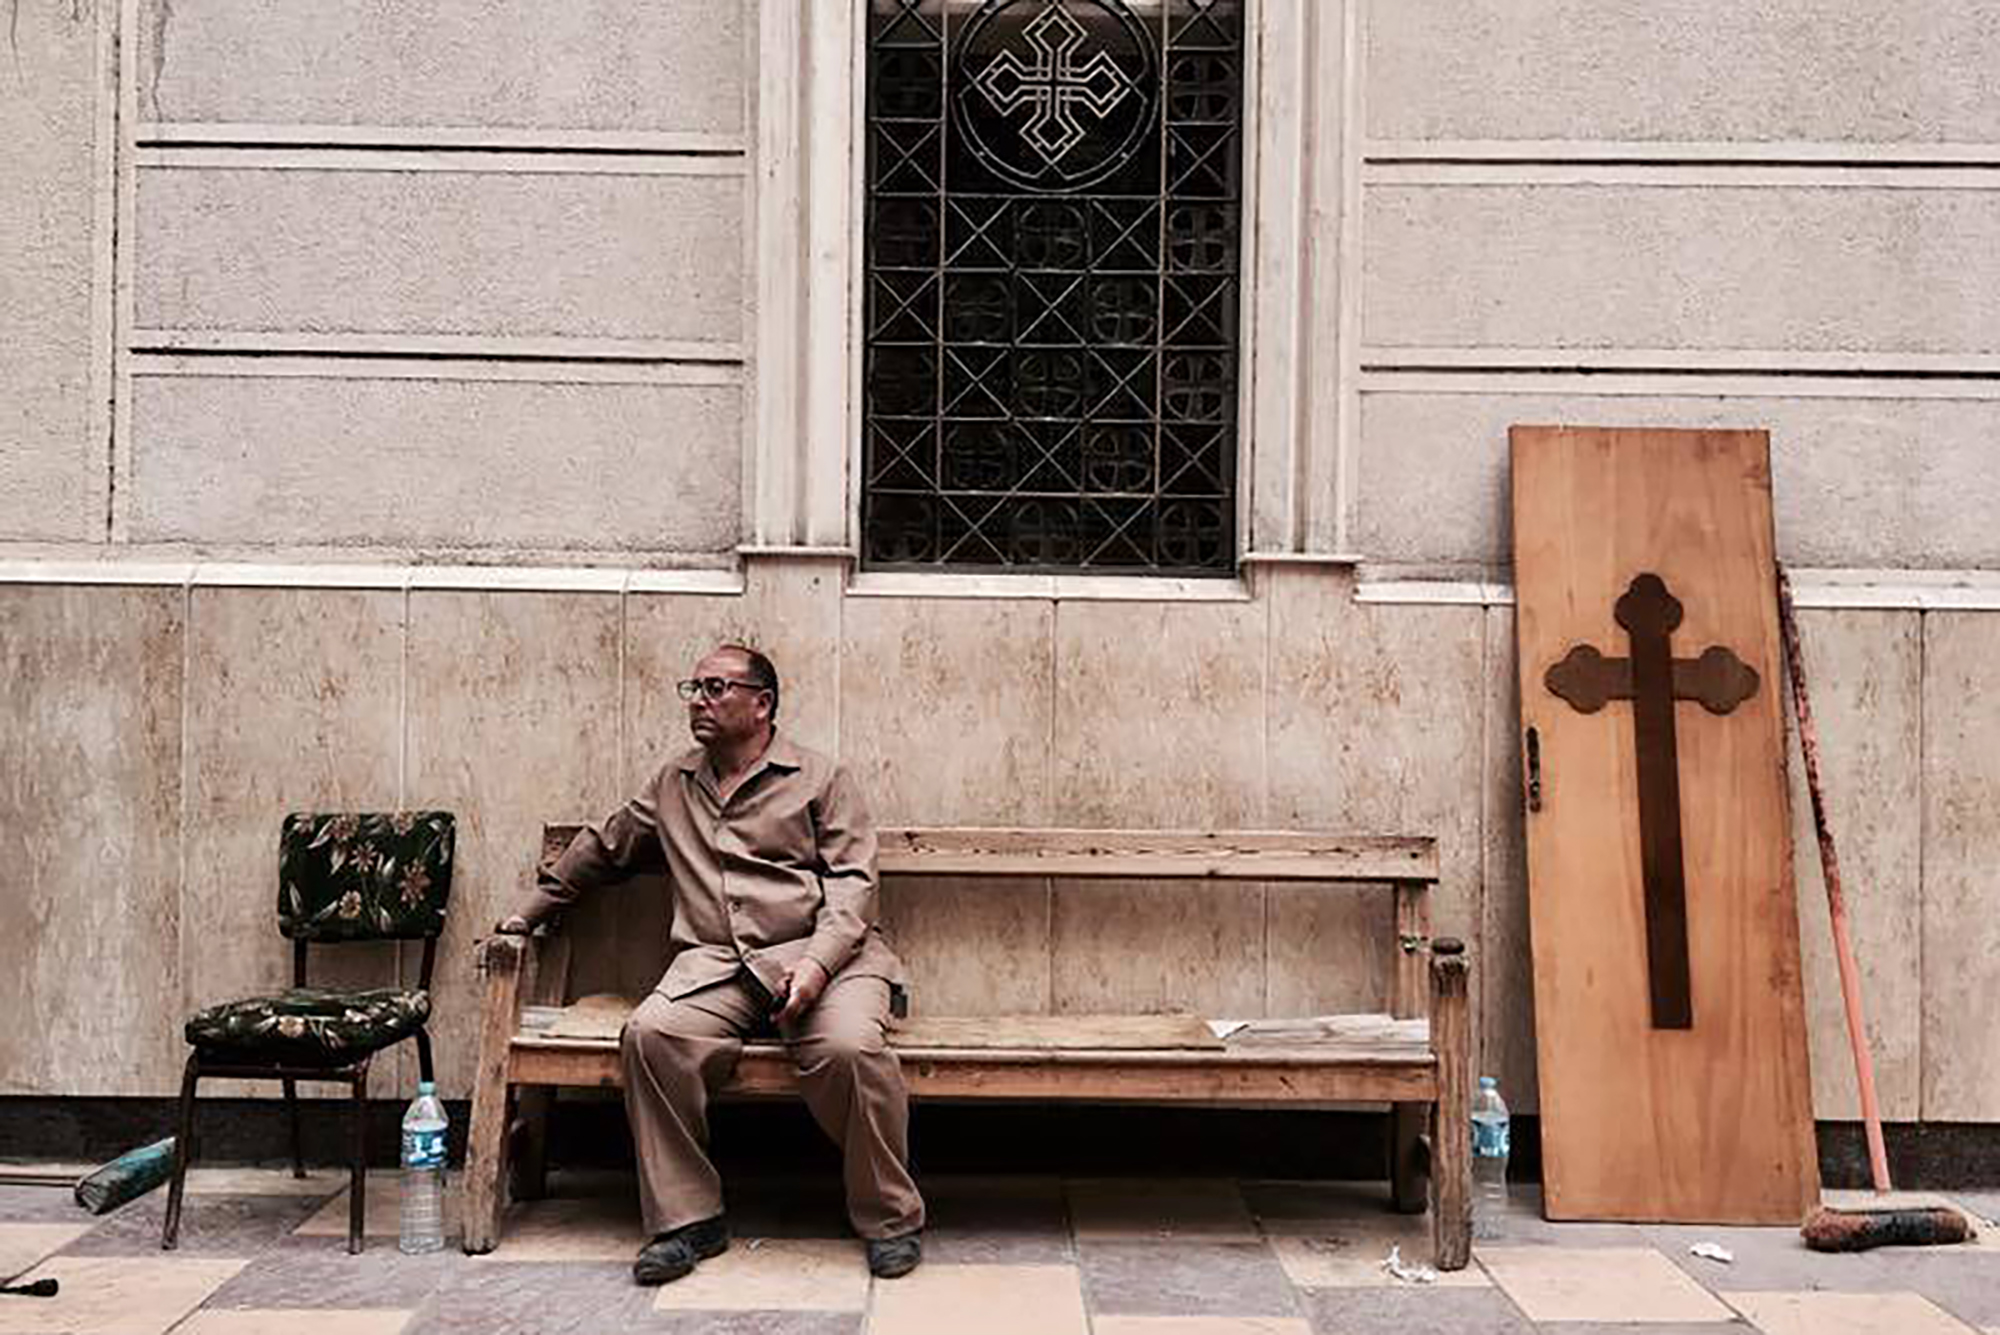 A man sits on a bench outside a church after a bomb attack in the Nile Delta town of Tanta, Egypt, on April 9, 2017.